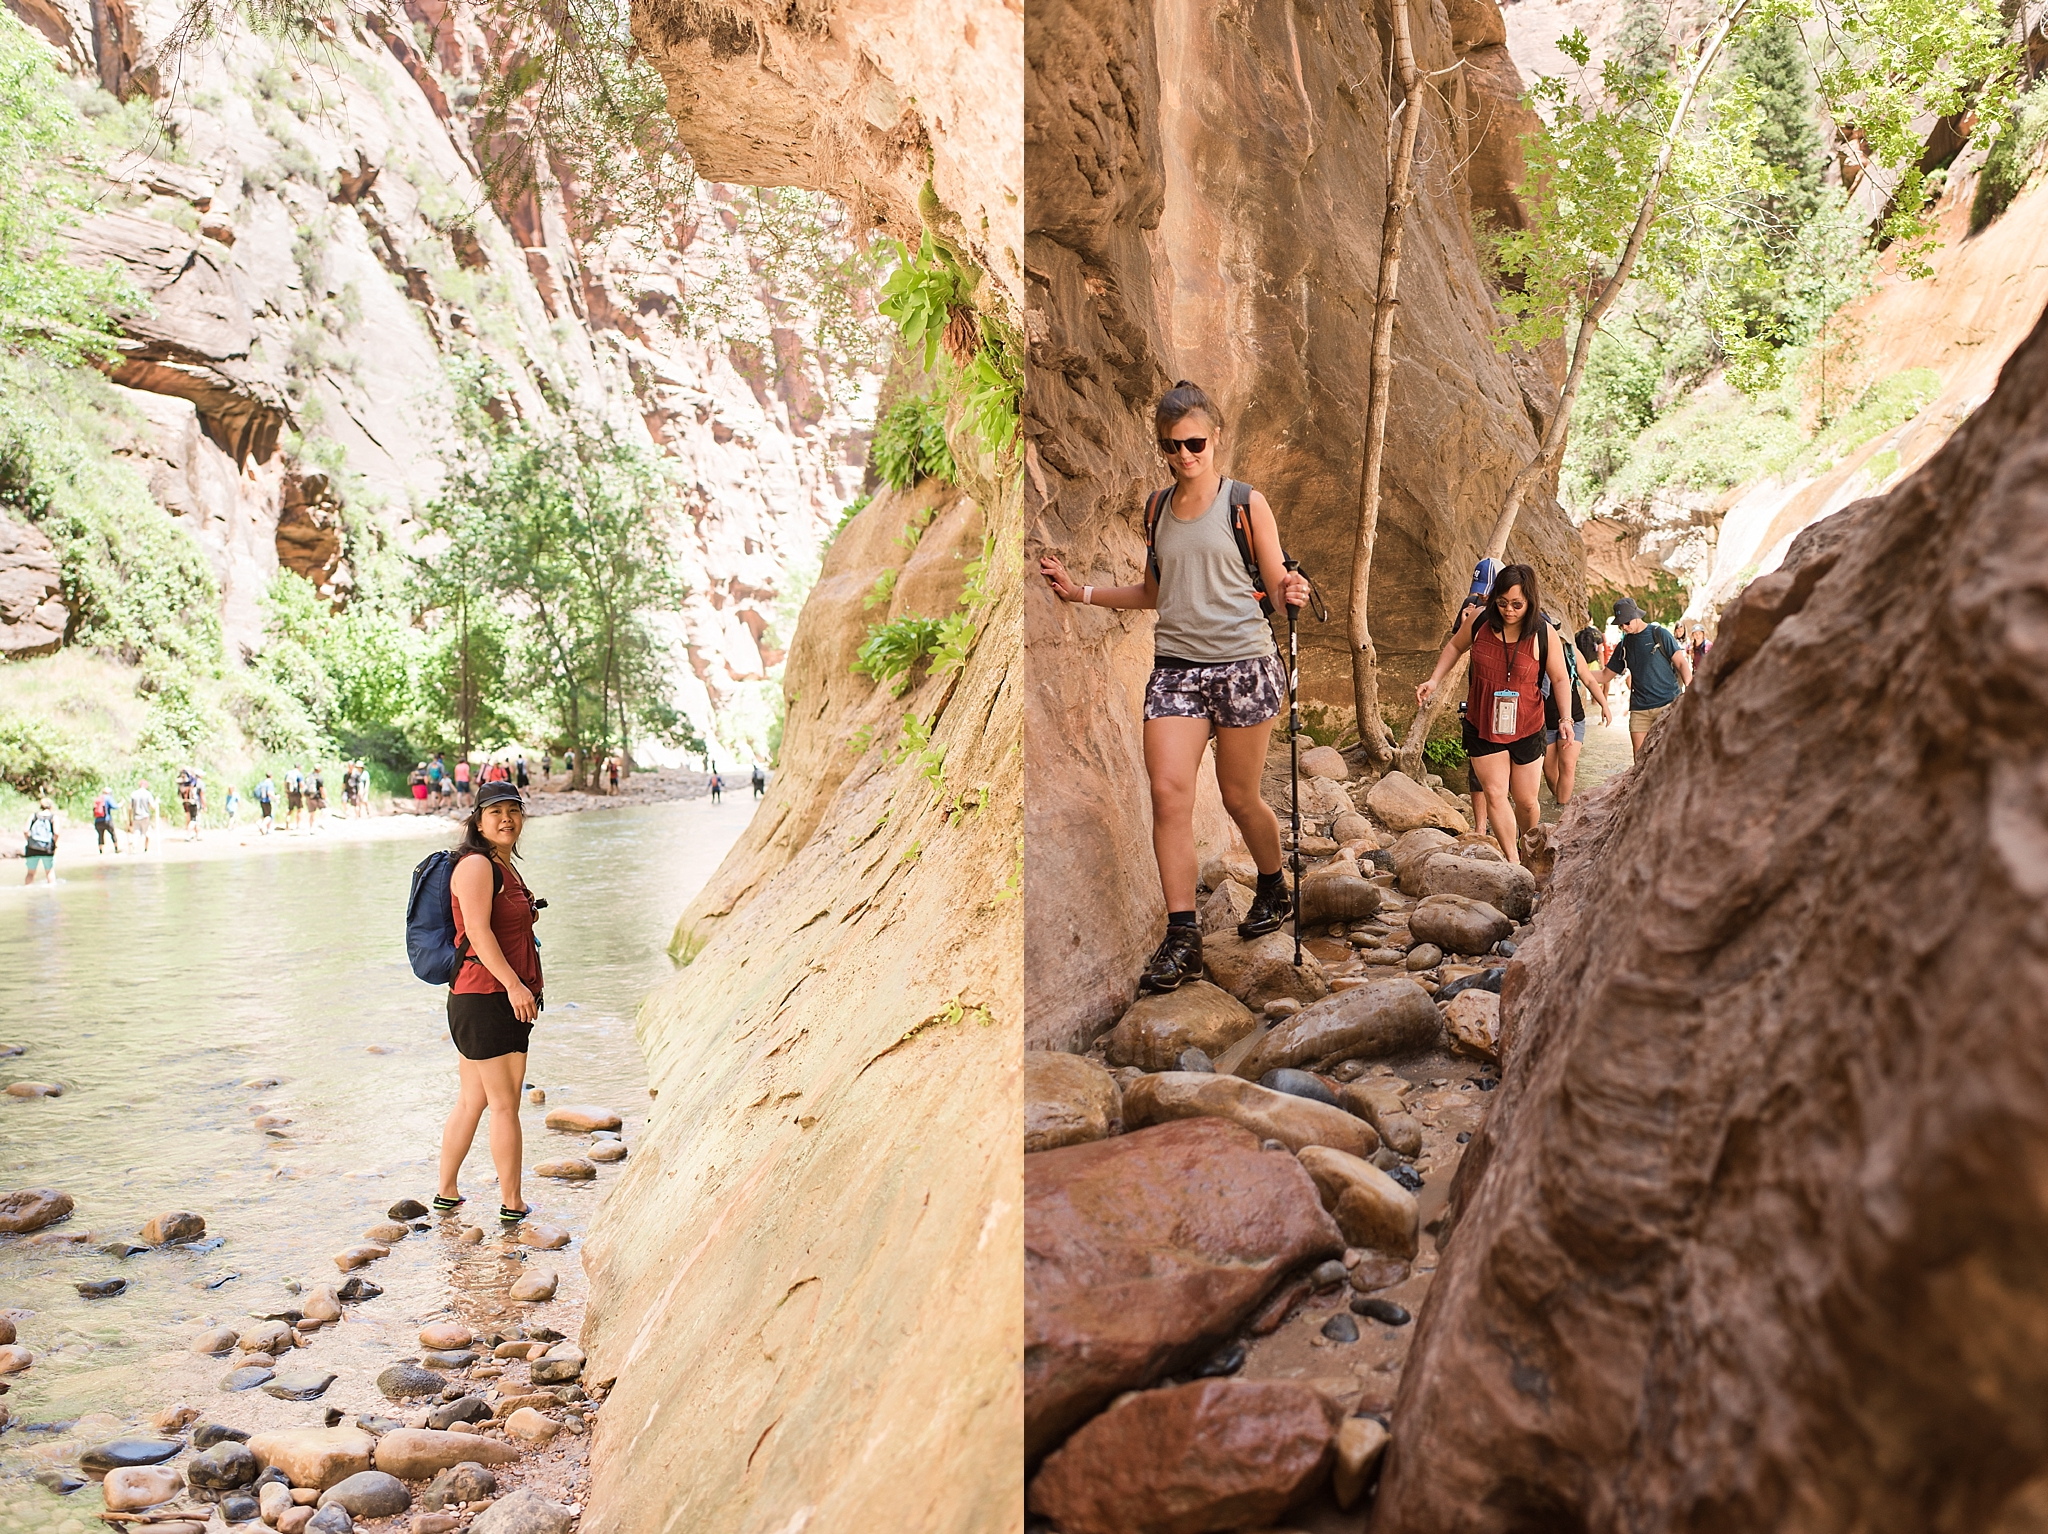 The Narrows hiking trail at Zion National Park near Springdale, Utah. Travel photo by Jade Min Photography.